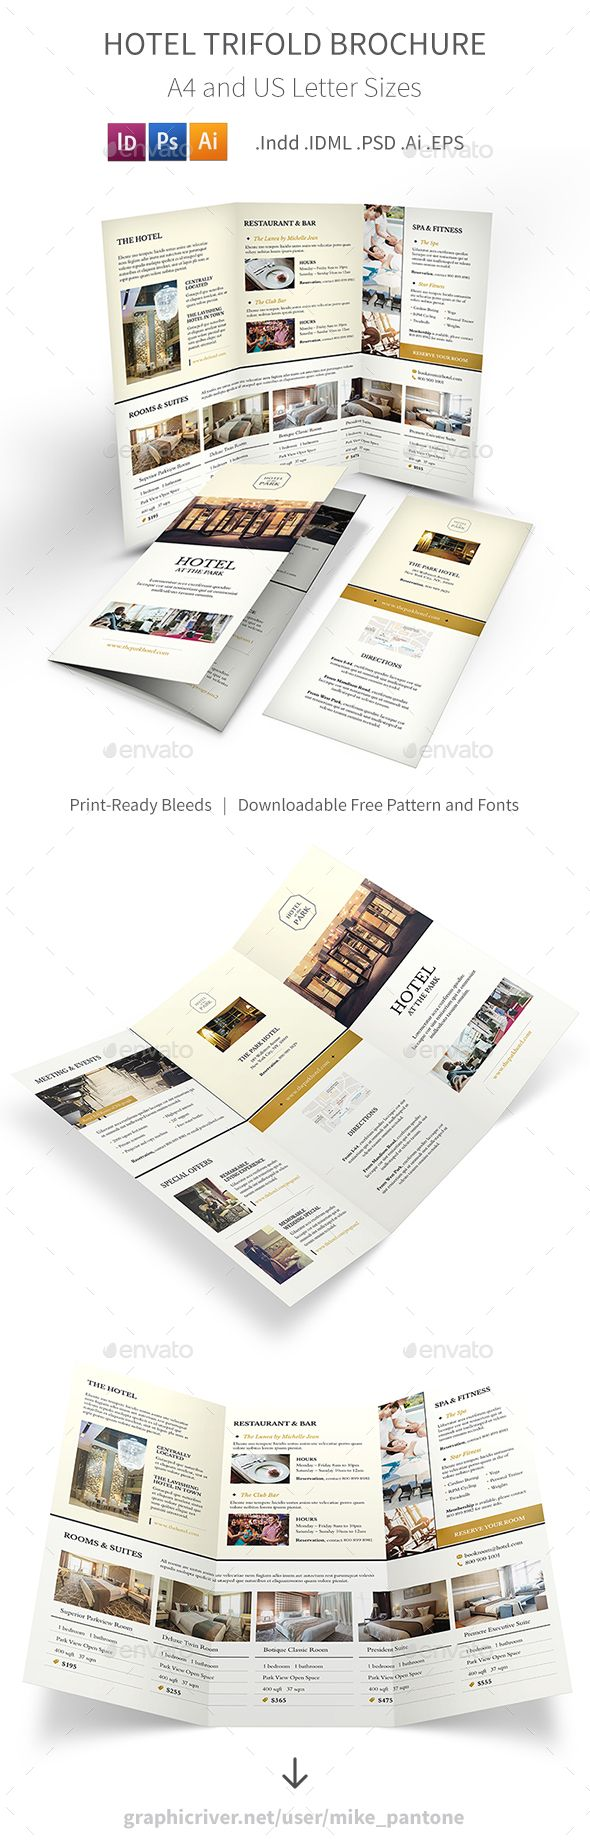 pin by maria alena on brochure templates pinterest brochure